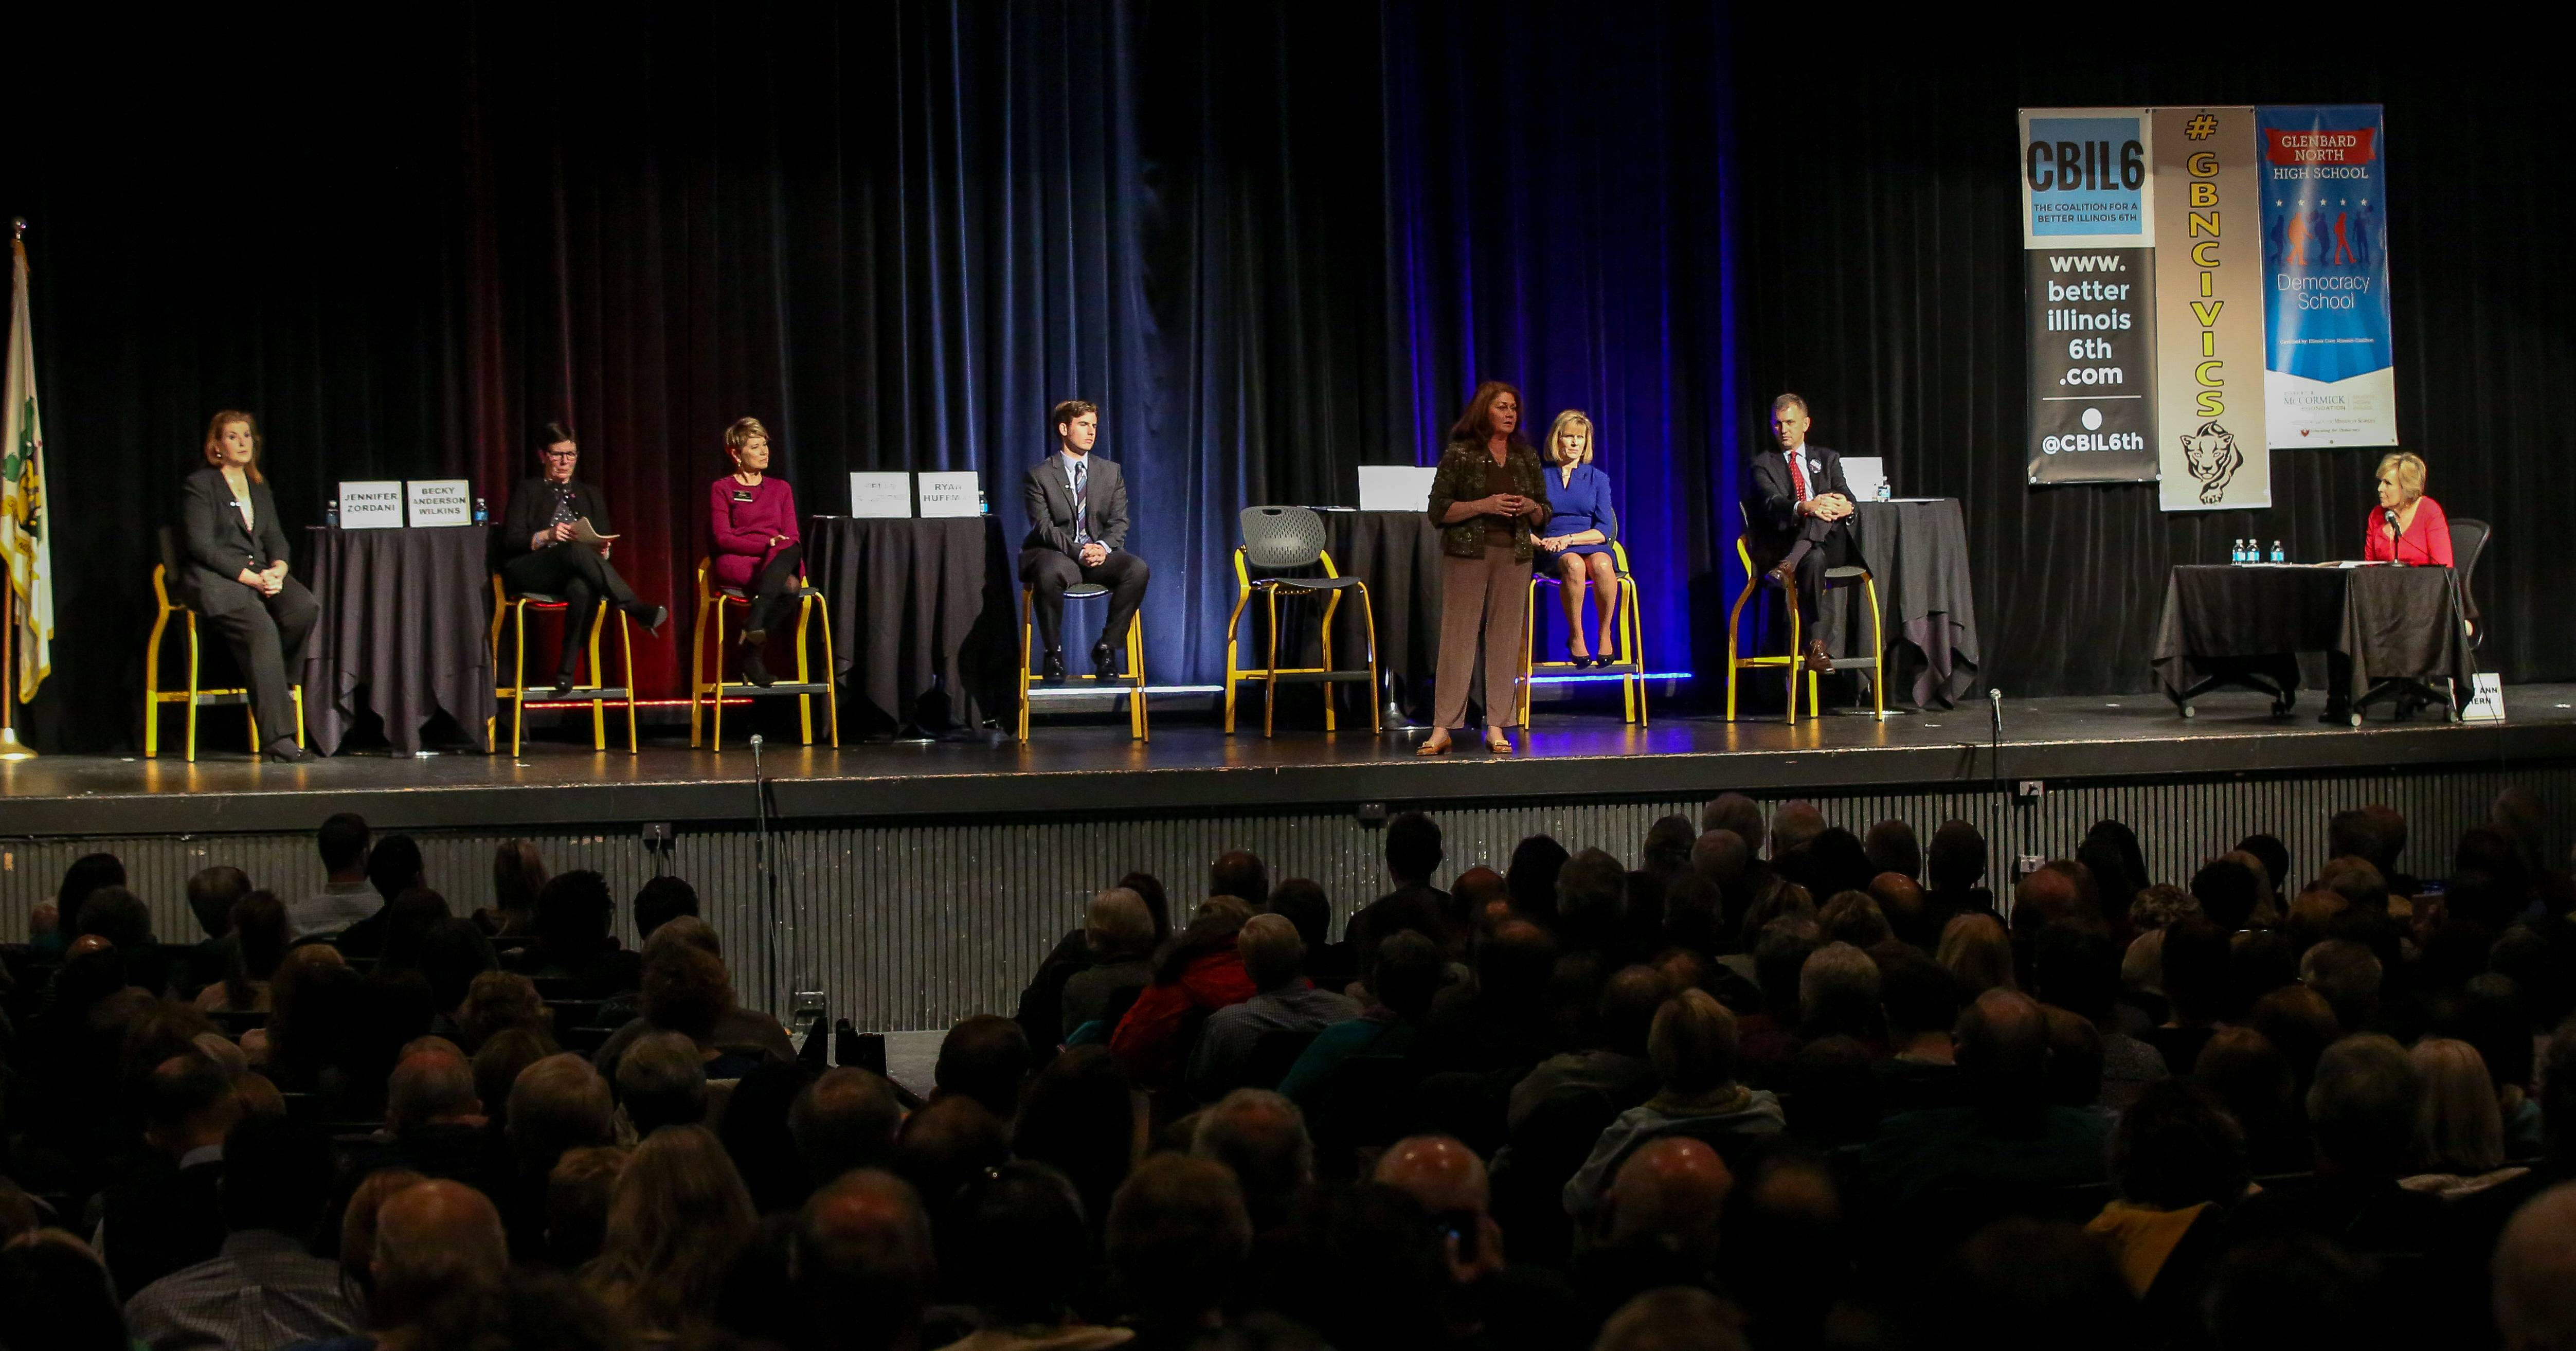 Seven Democrats want their party's nomination to square off against 6th District U.S. Rep. Peter Roskam.